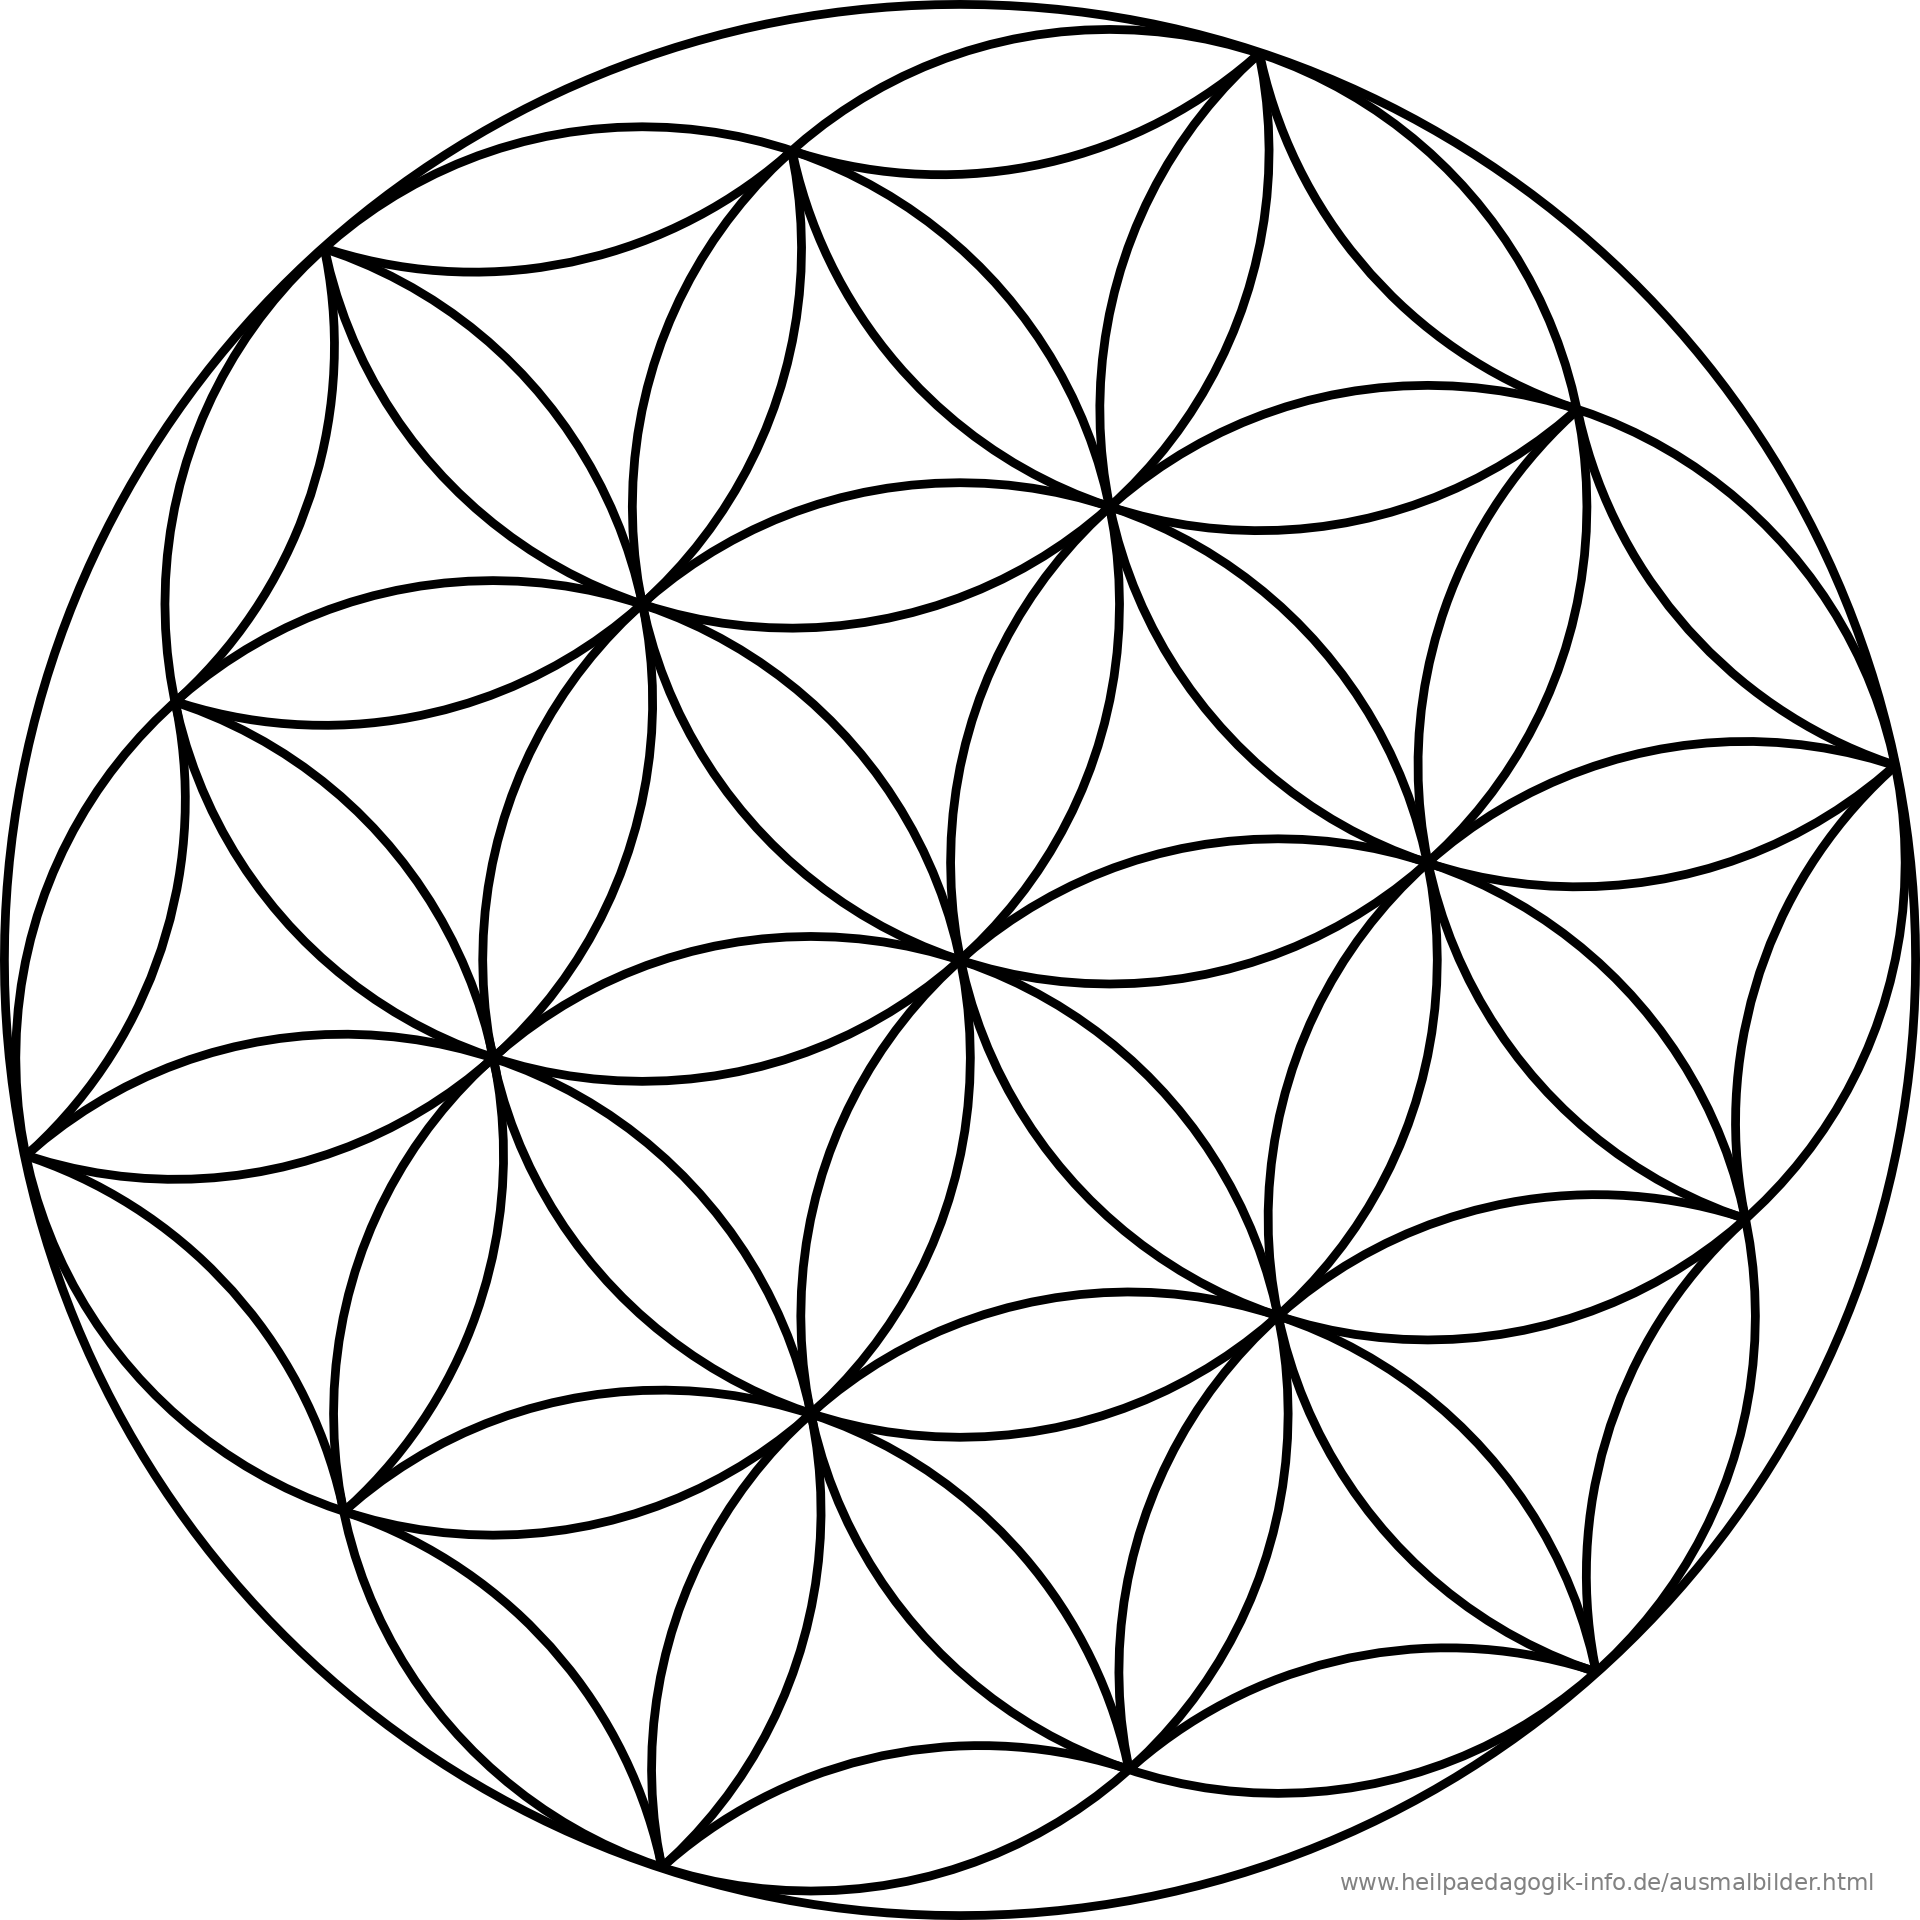 Flower Circle Line Drawing : Ausmalbilder mandalas